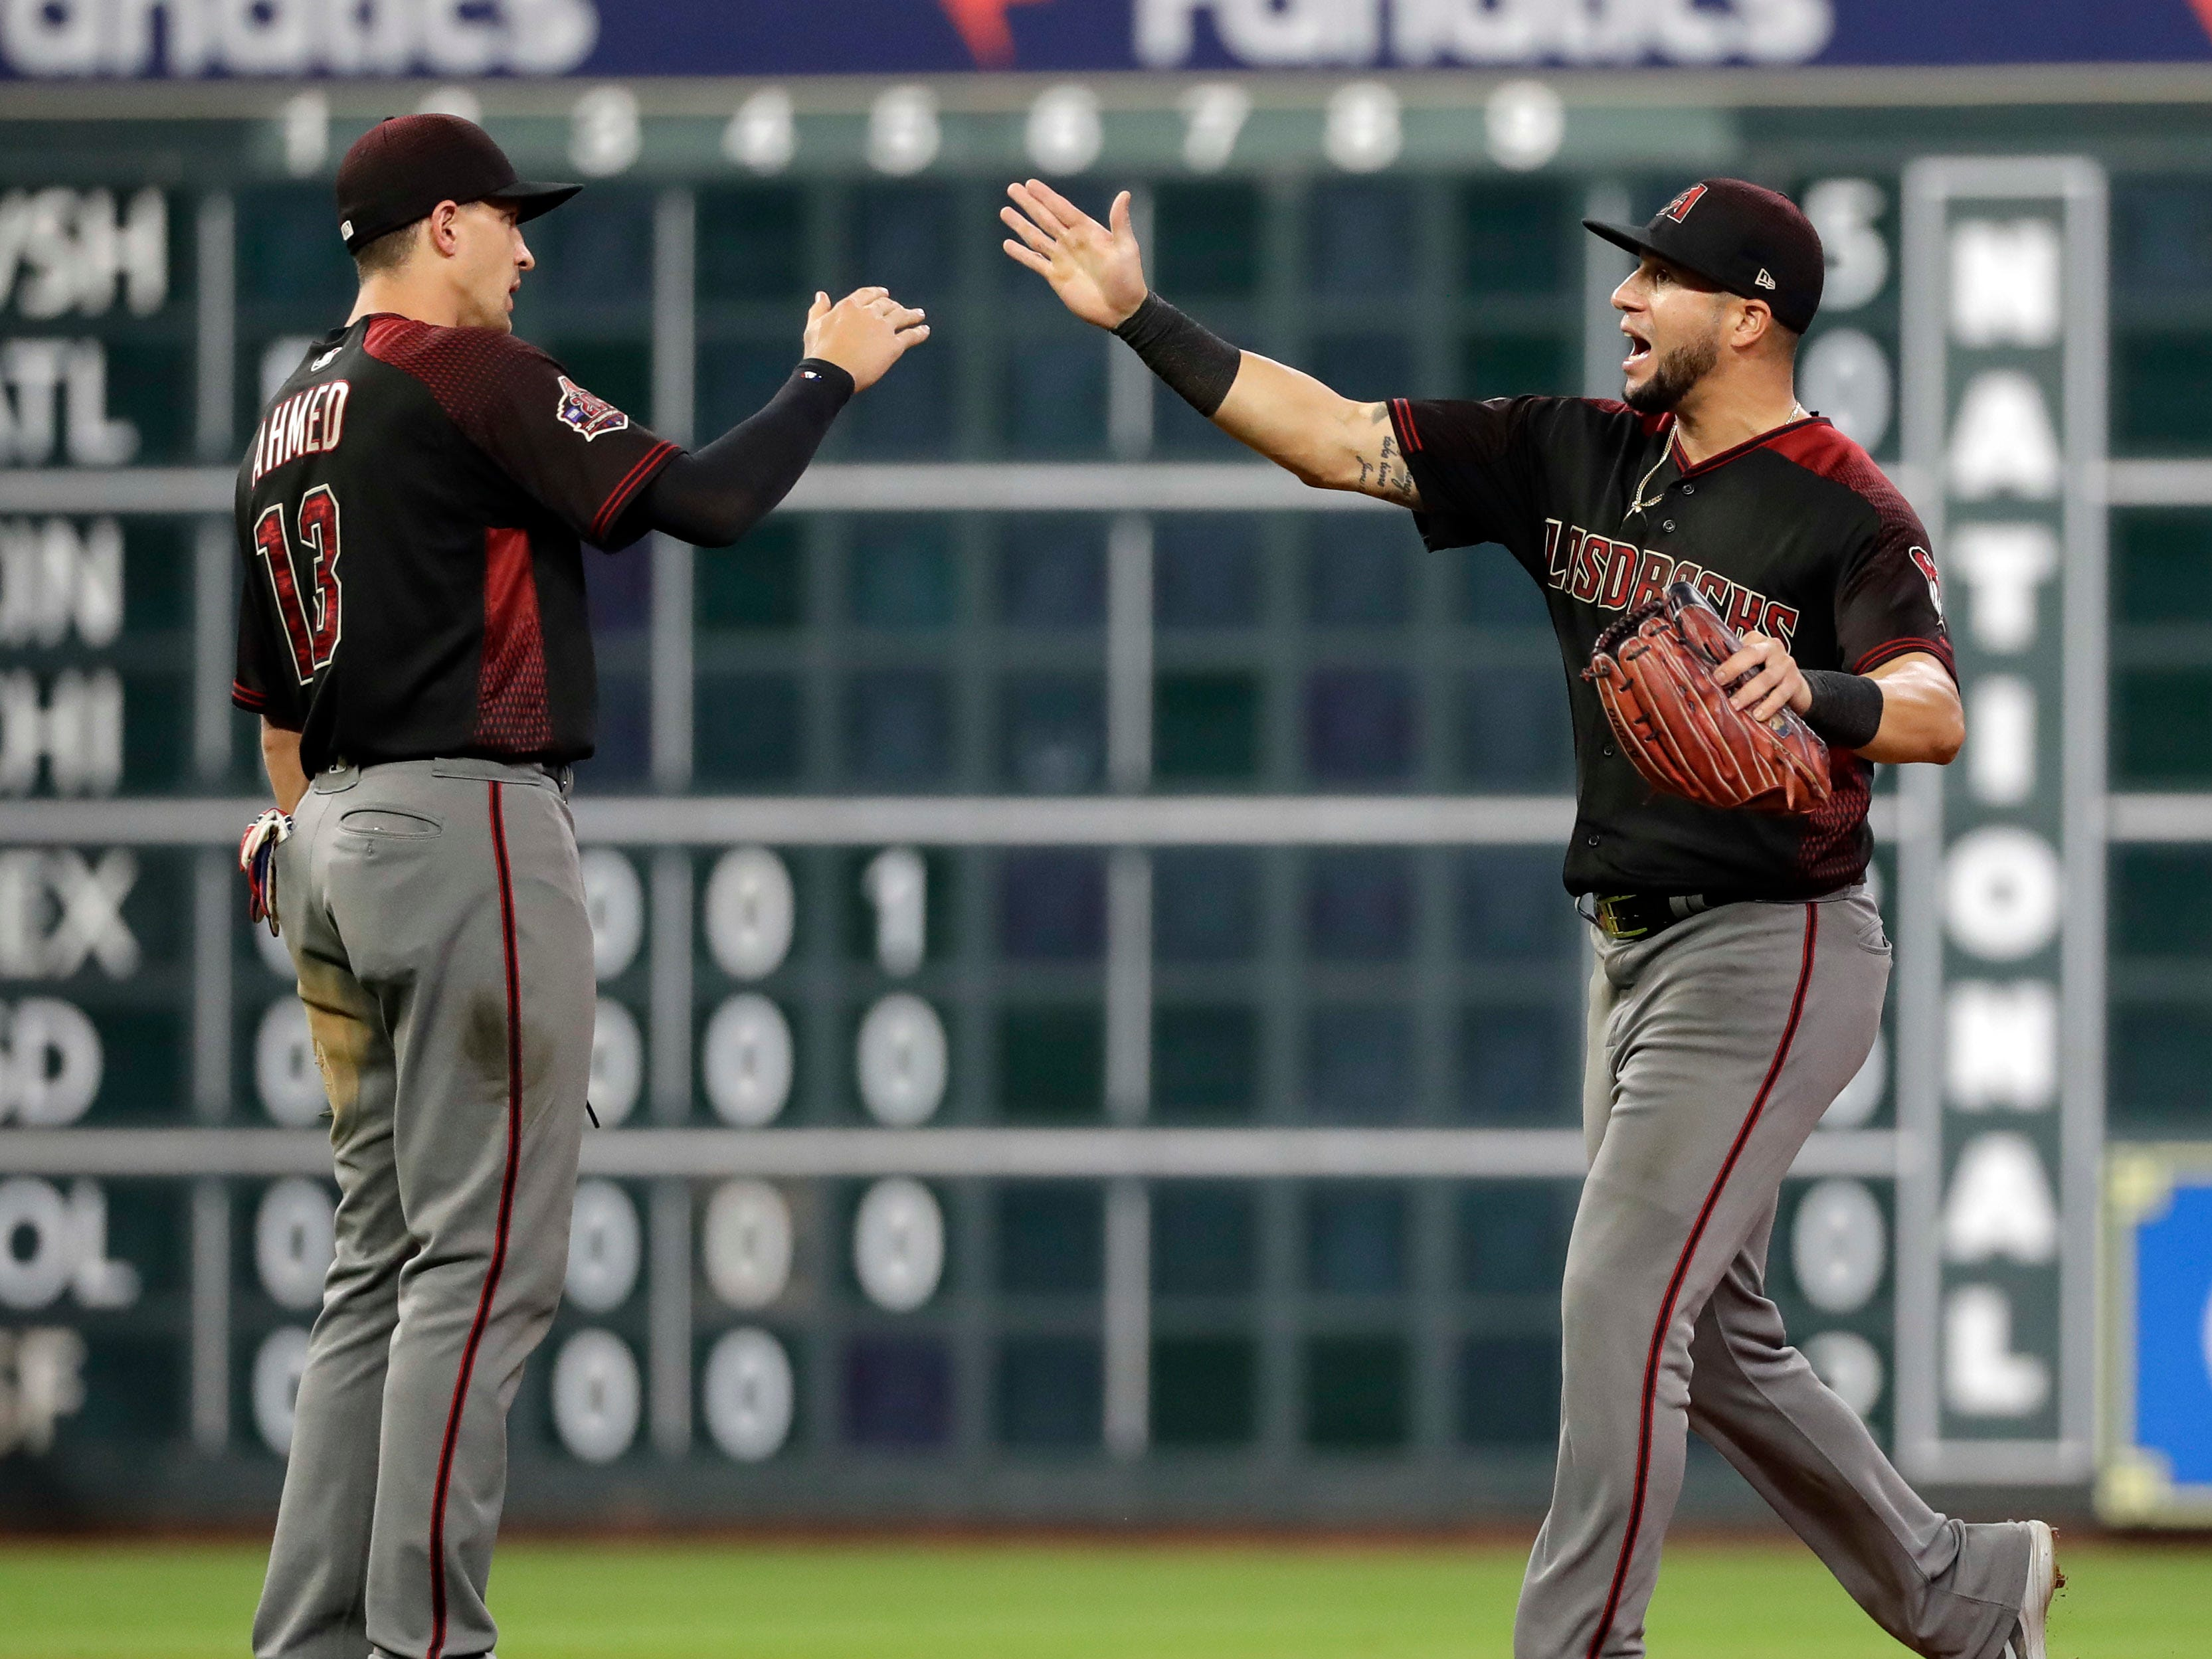 Arizona Diamondbacks' Nick Ahmed (13) and David Peralta celebrate after a baseball game against the Houston Astros Friday, Sept. 14, 2018, in Houston. The Diamondbacks won 4-2. (AP Photo/David J. Phillip)